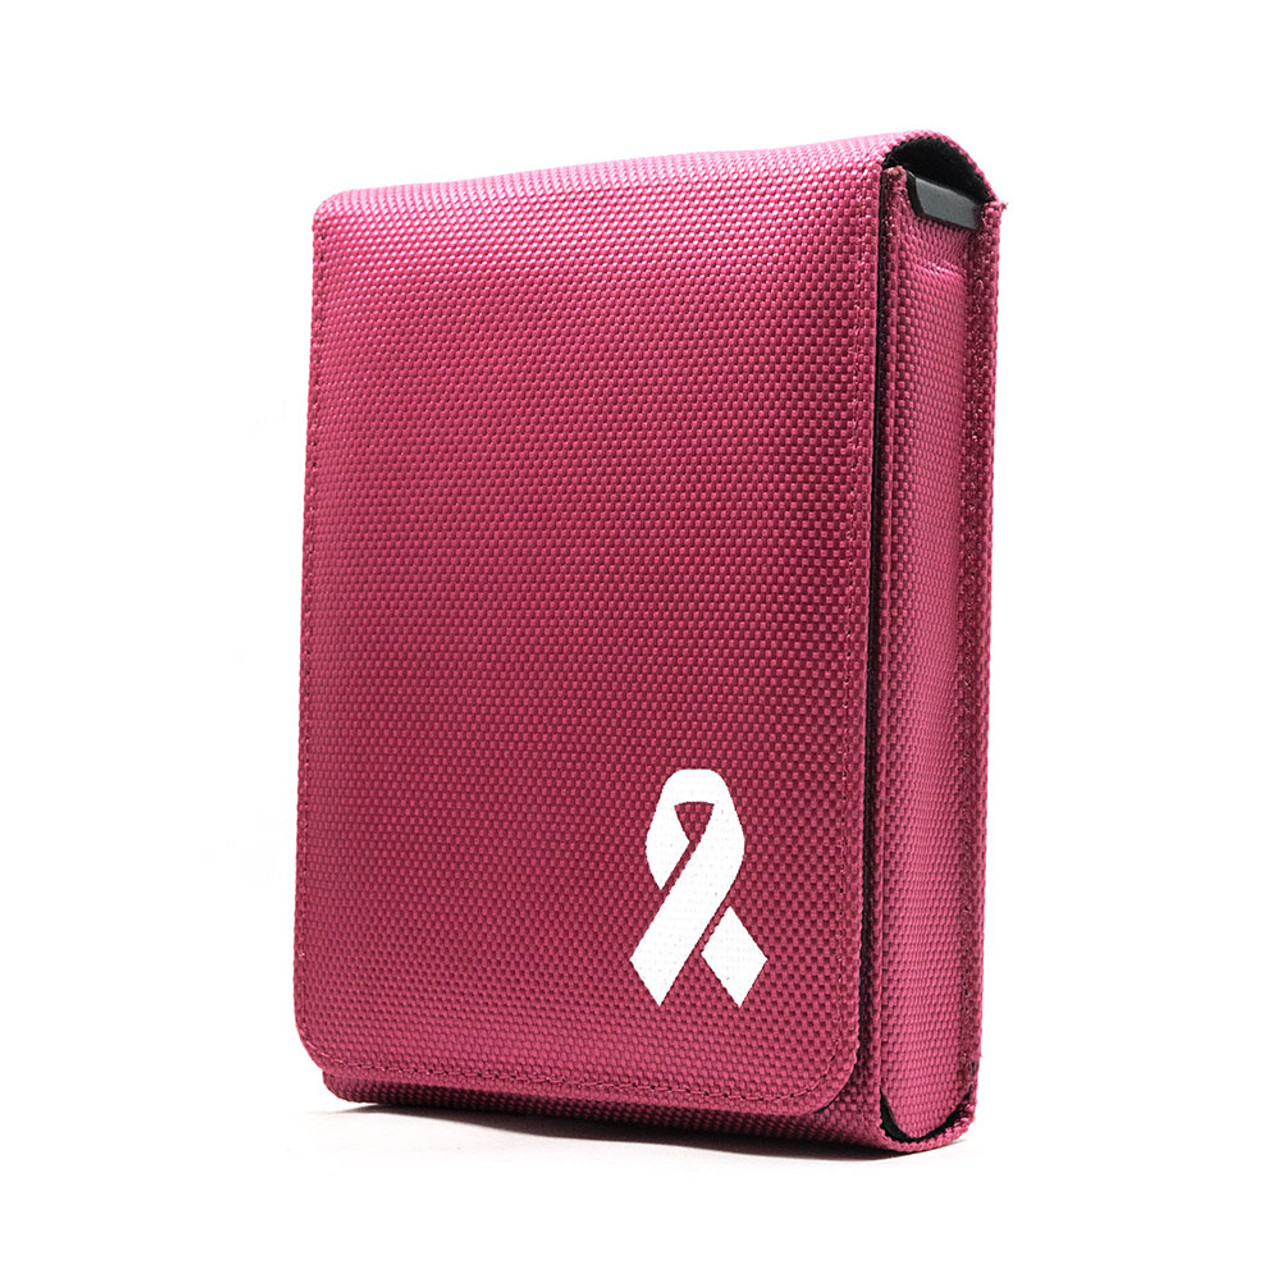 Ruger Security 9 Pink Covert Series Holster